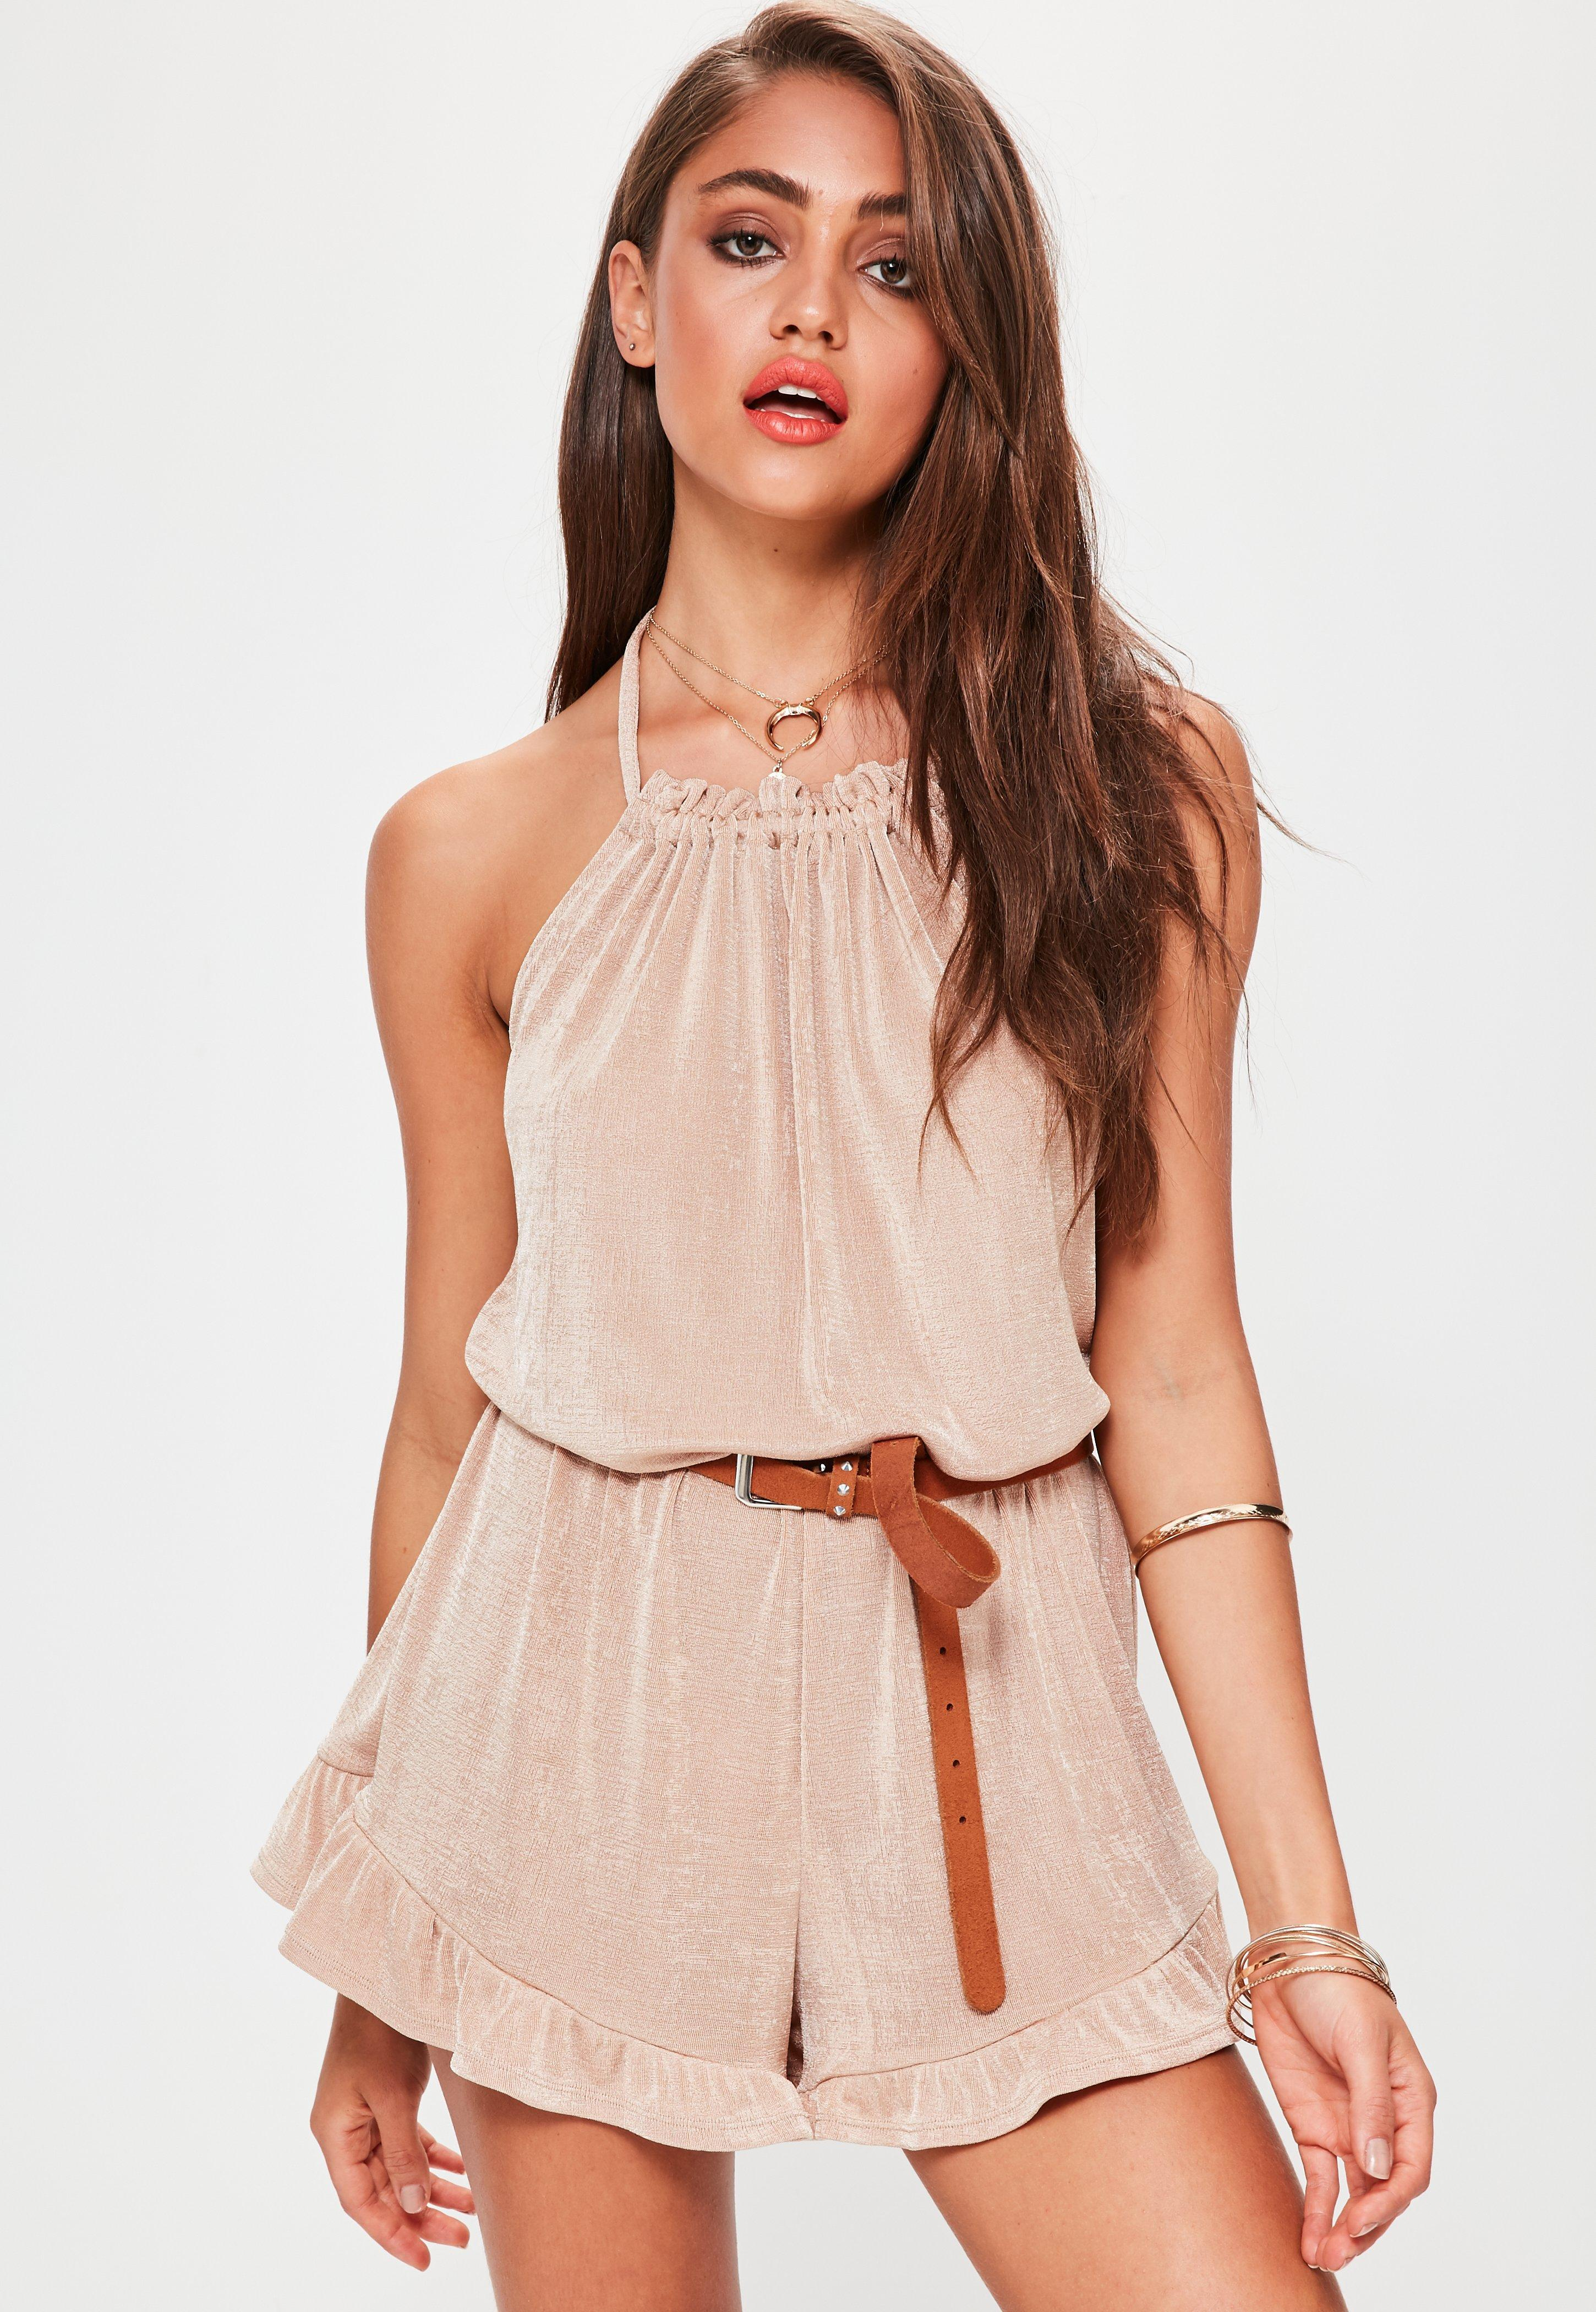 b256b9ec6d Missguided Nude Gathered Neck Halterneck Frill Short Playsuit in ...